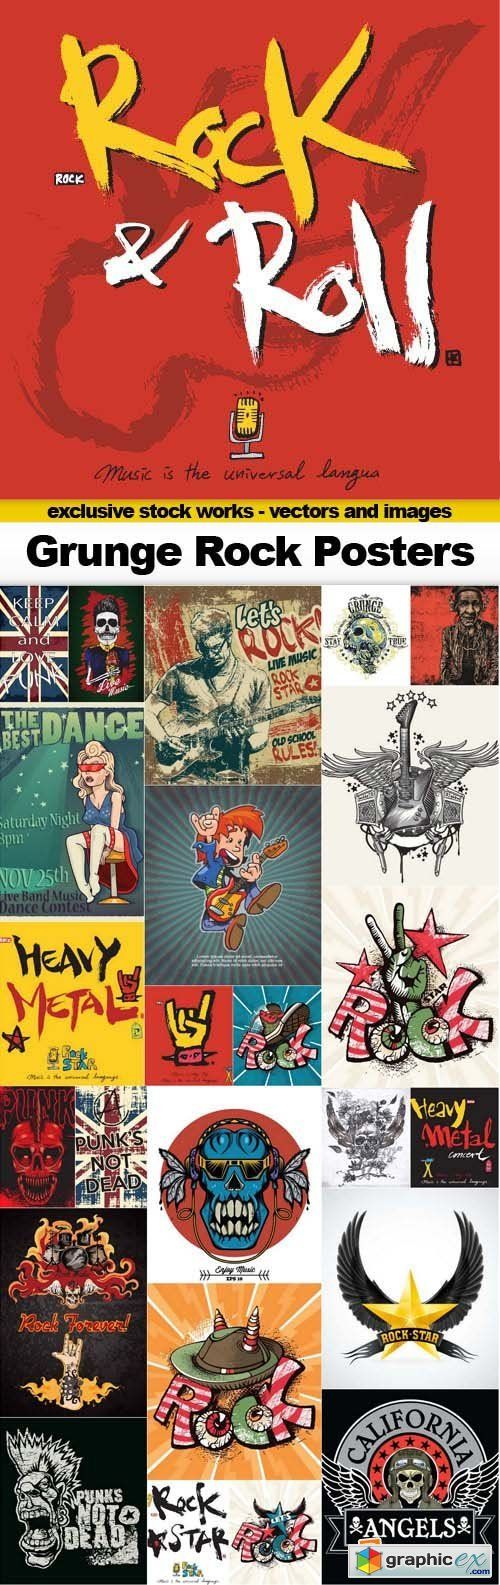 T shirt design 7 25xeps - Grunge Rock Posters 25x Eps